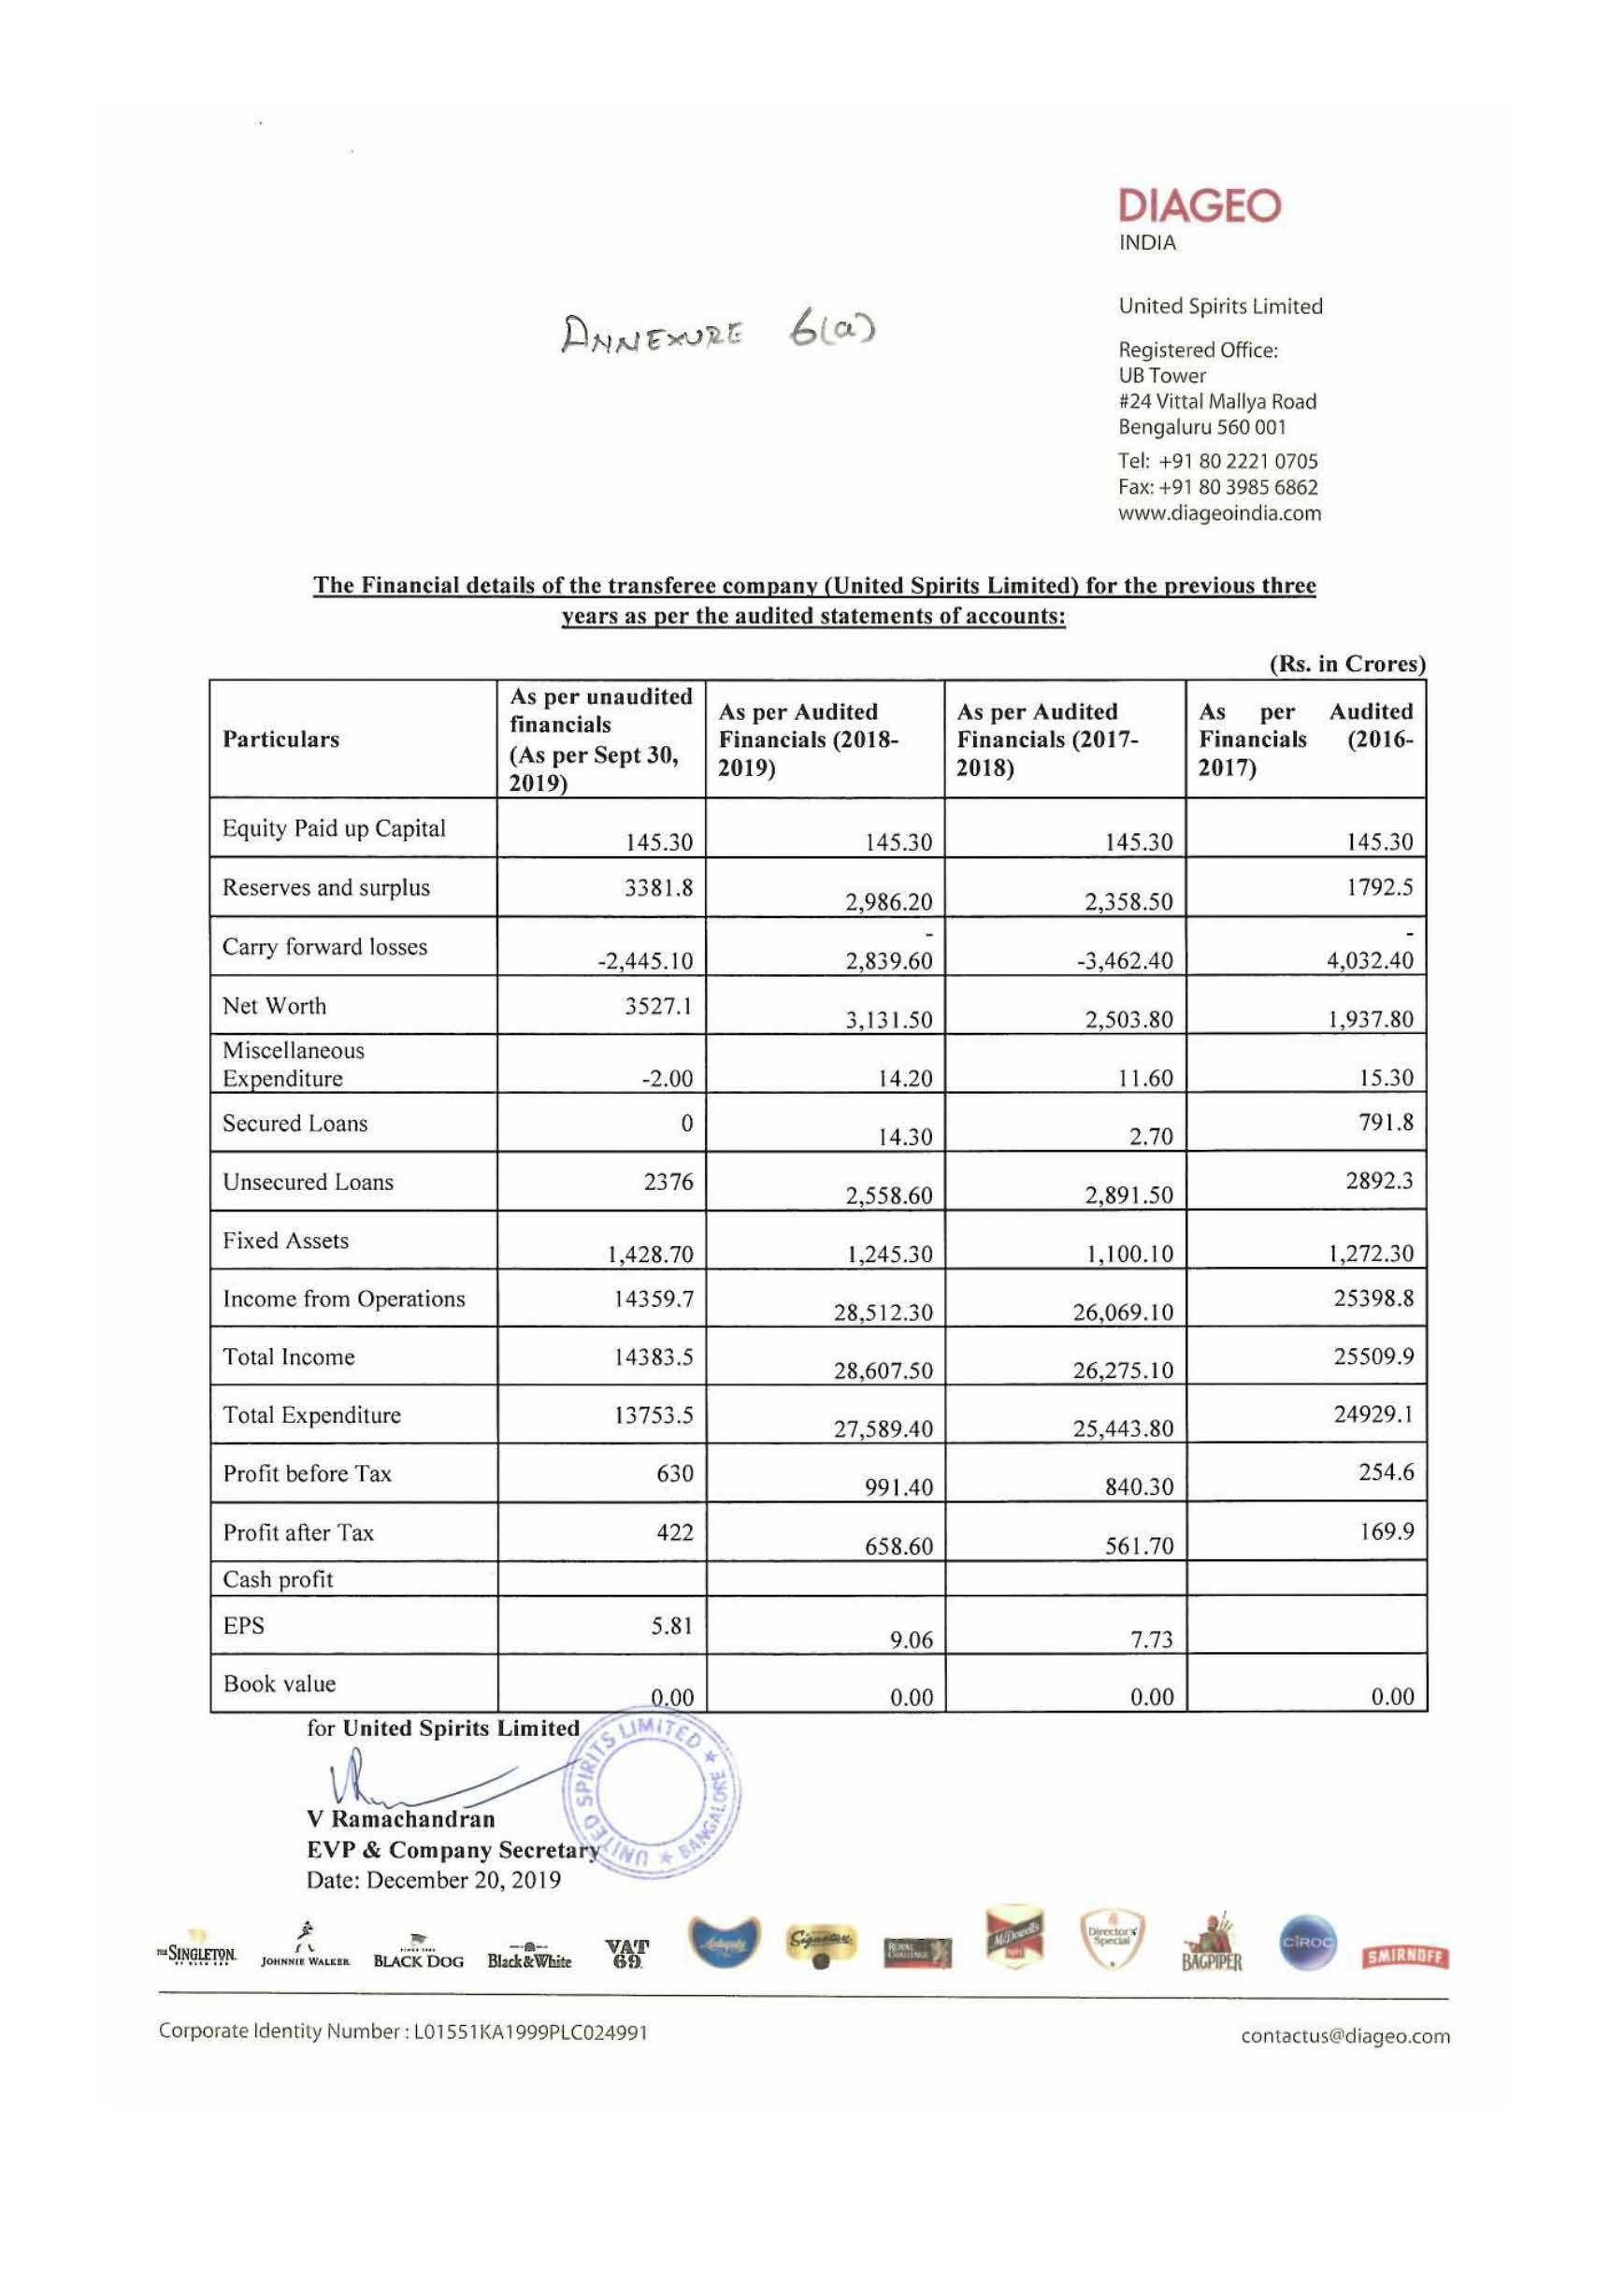 Financial details of the companies